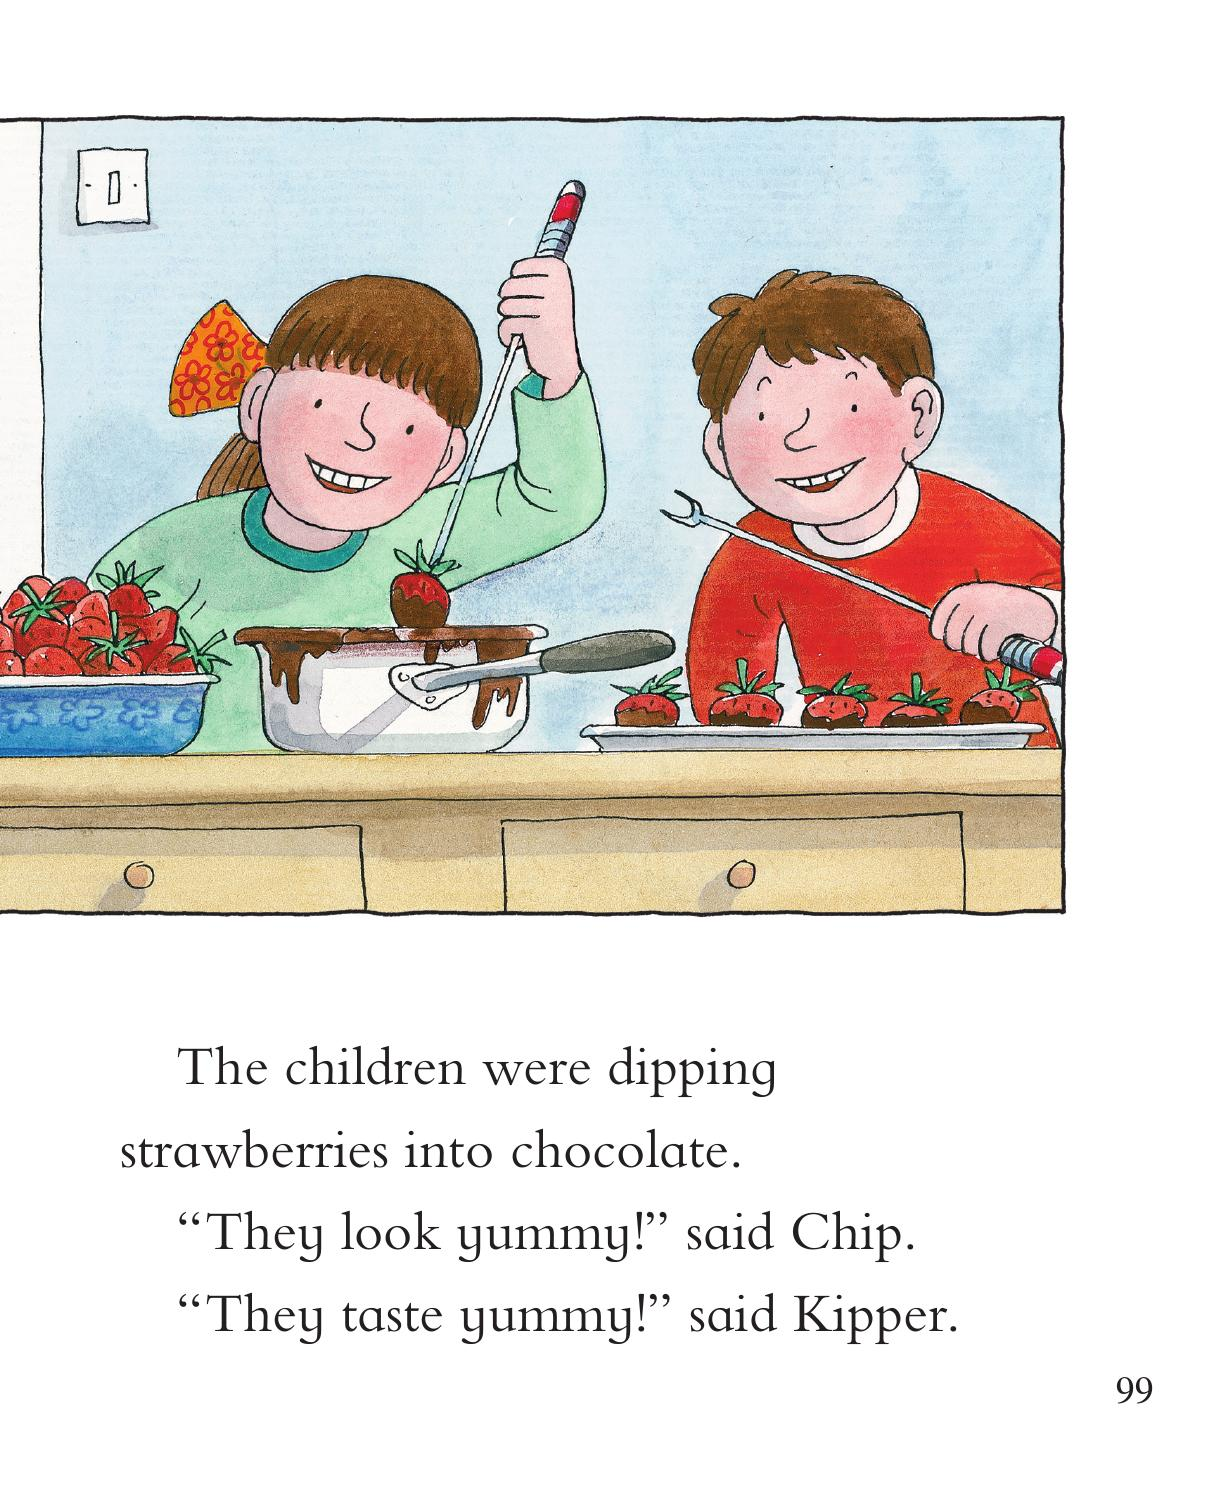 Read With Biff, Chip And Kipper: The Golden Touch By